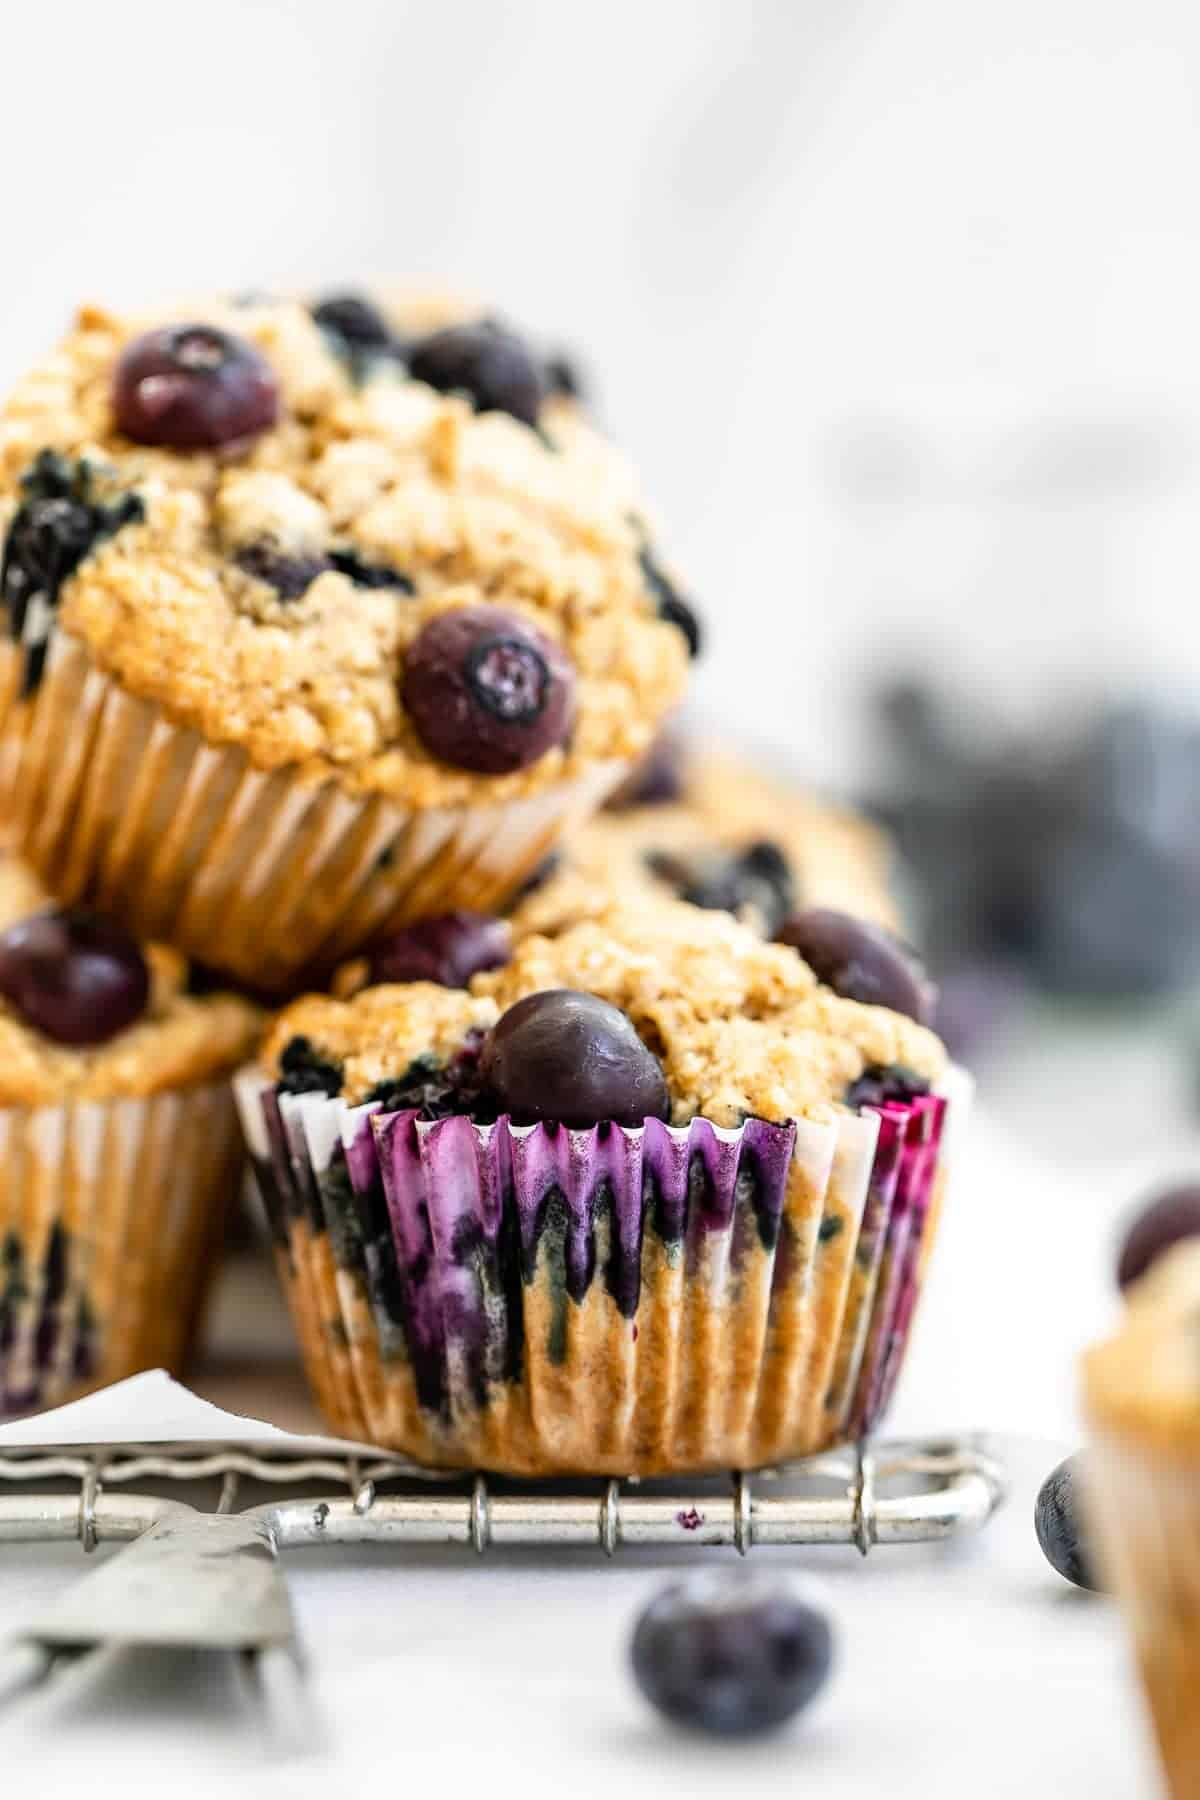 Blueberry oatmeal muffins stacked on each other.